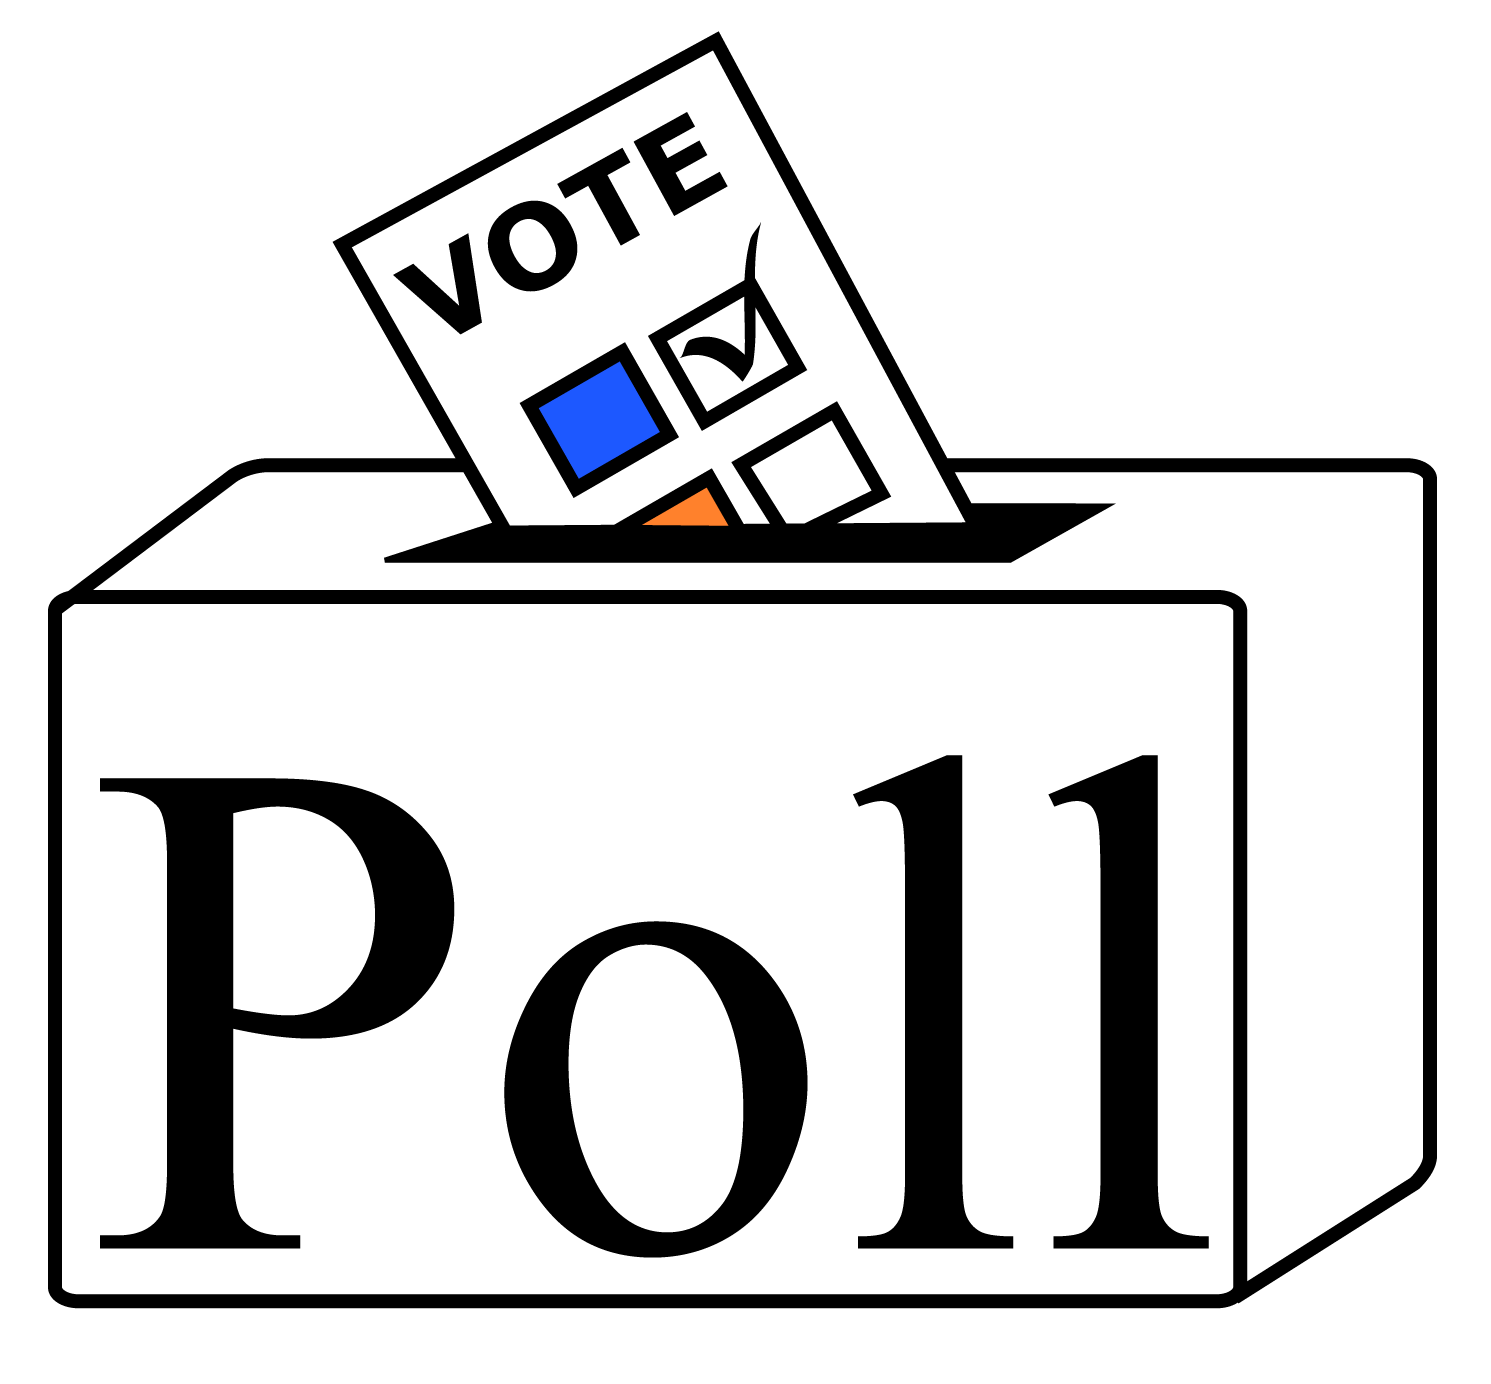 Your vote is secret. Voting clipart polling station